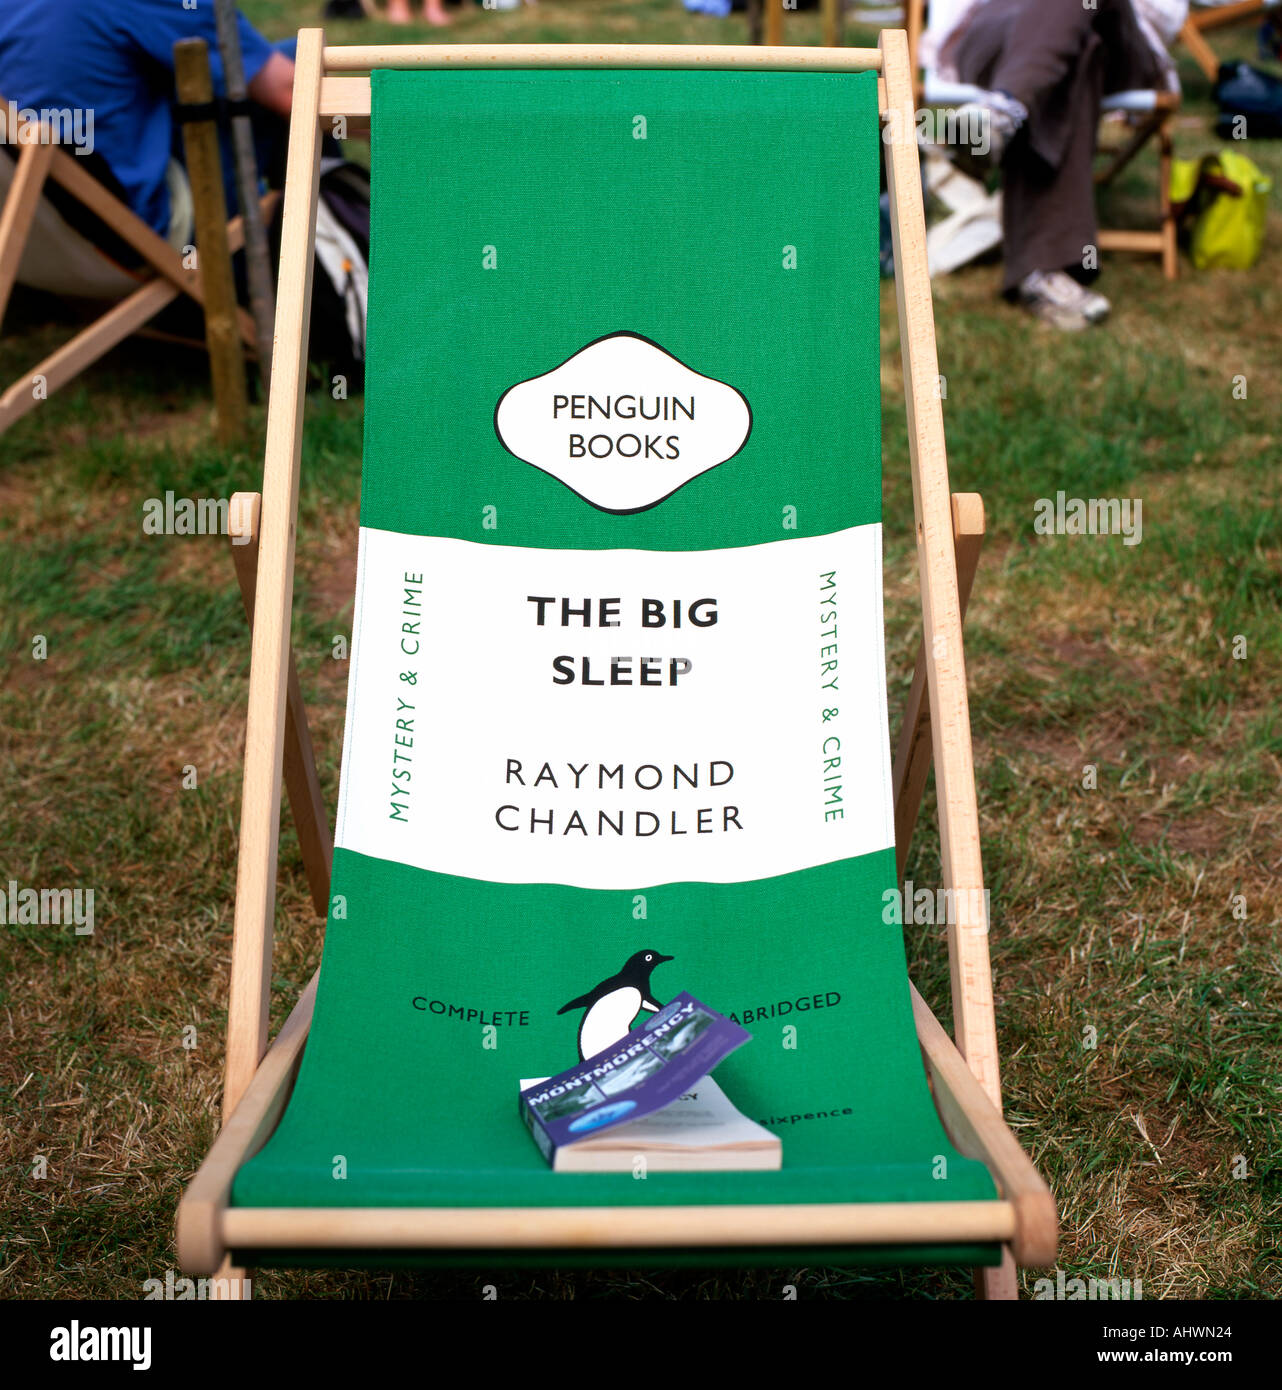 THE BIG SLEEP Raymond Chandler Penguin Books book cover deckchair at the Hay Festival Hay-on-Wye Powys Wales UK  KATHY DEWITT - Stock Image